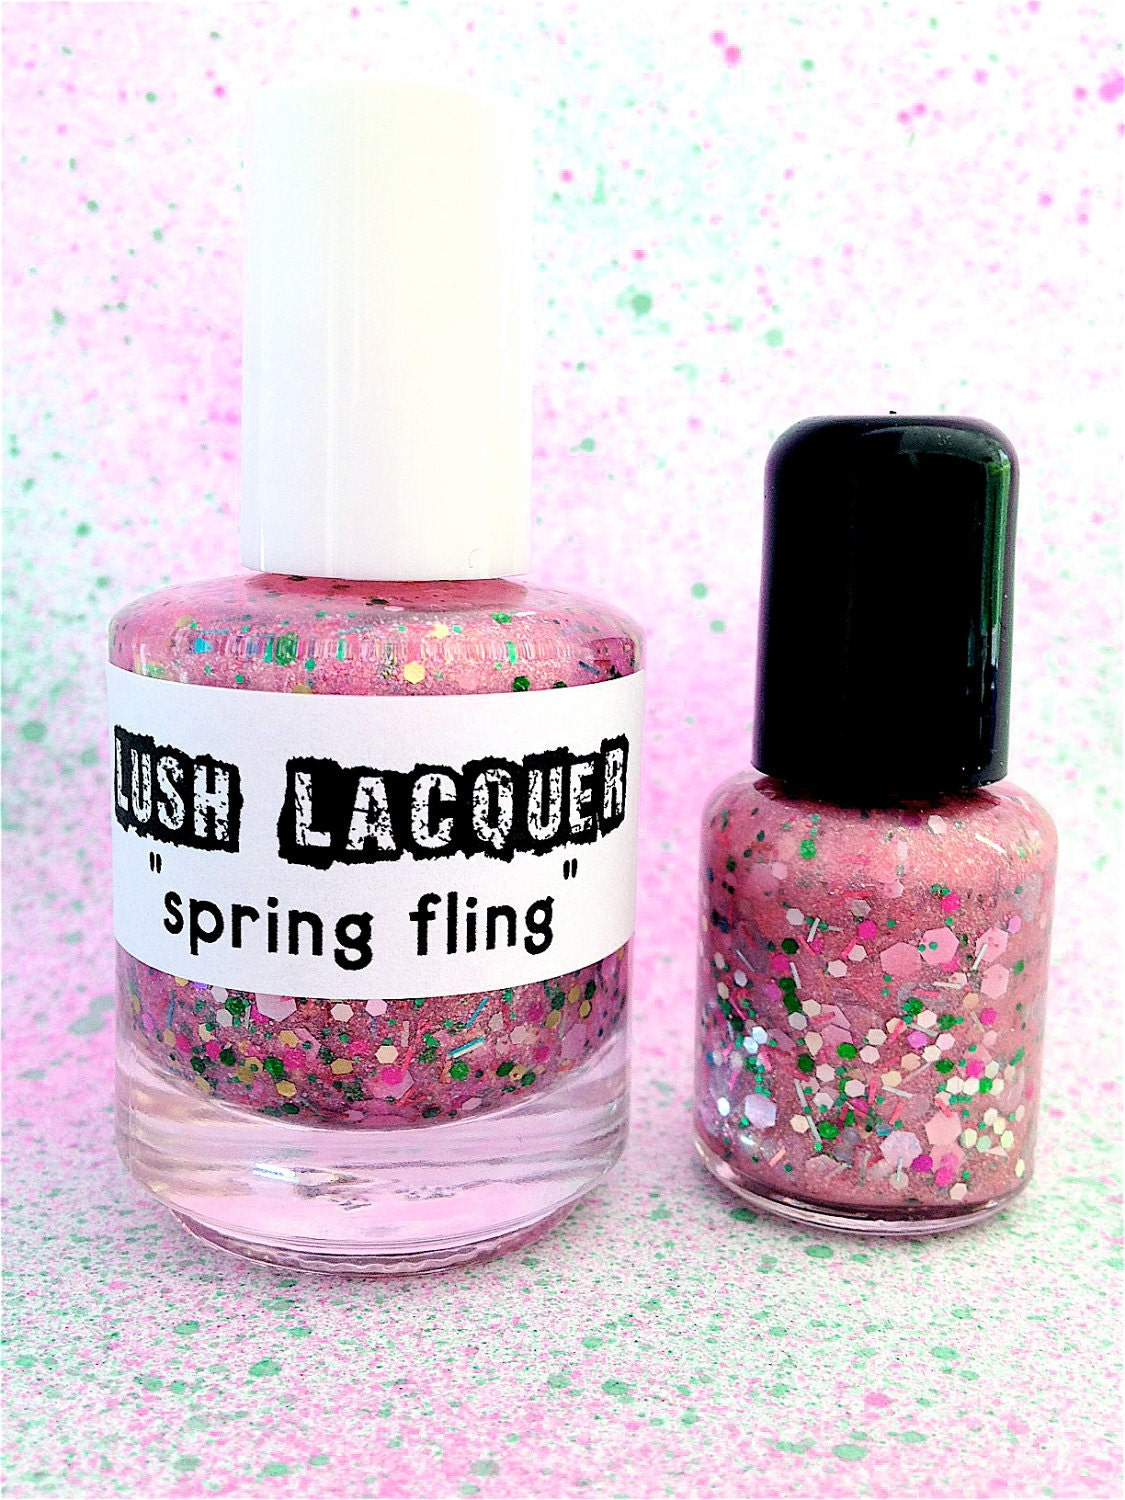 Spring Fling :  Custom-Blended Glitter Nail Polish / Lacquer         (One regular size bottle 15 ml size)